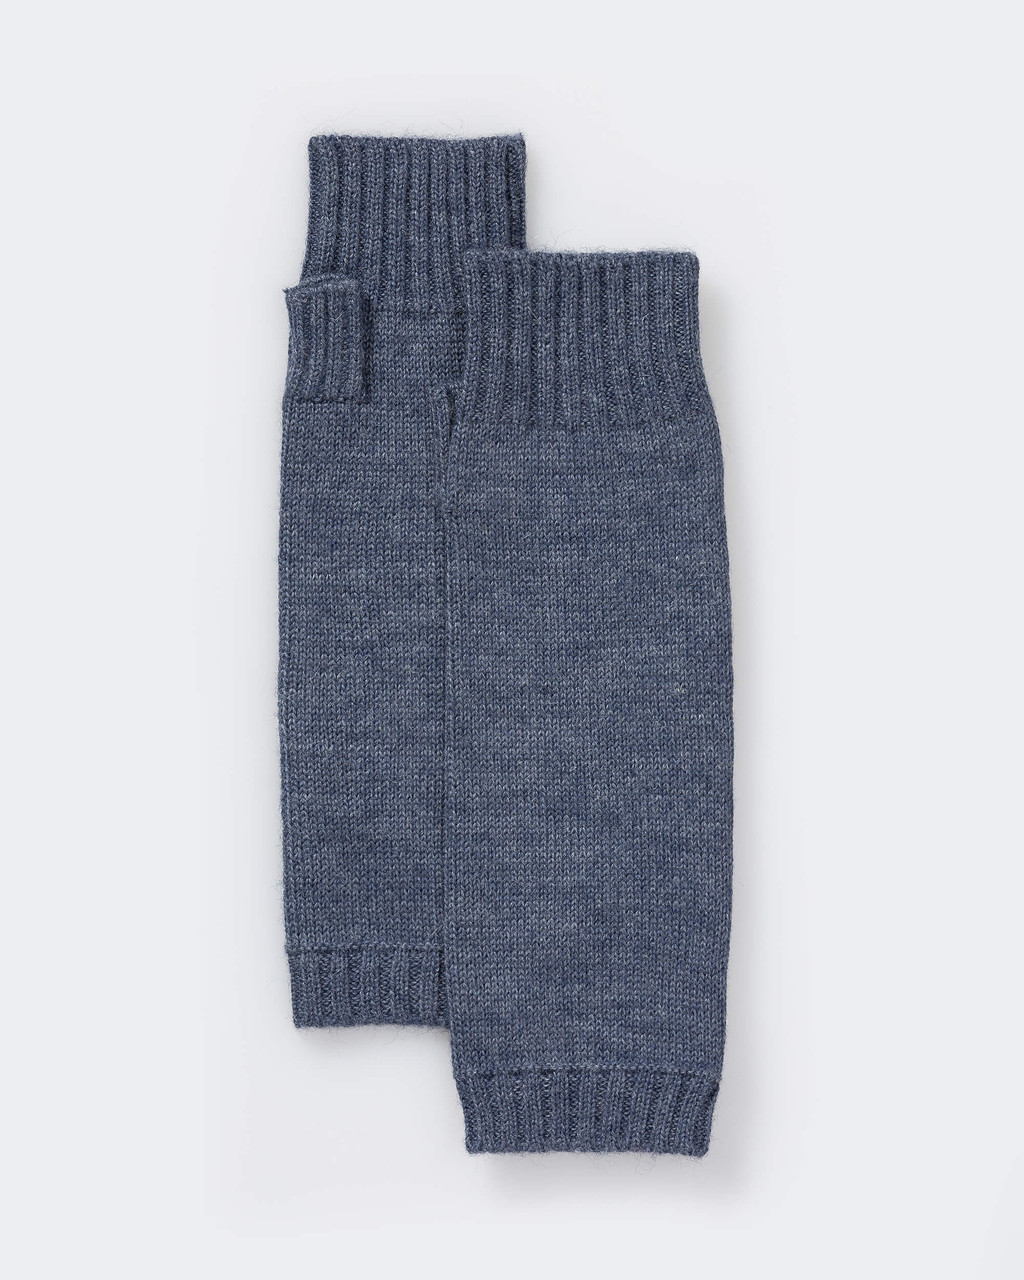 Alicia Adams Alpaca Classic Handwarmers, alpaca fingerless gloves, alpaca gloves fingerless, alpaca gloves women, denim blue alpaca fingerless gloves